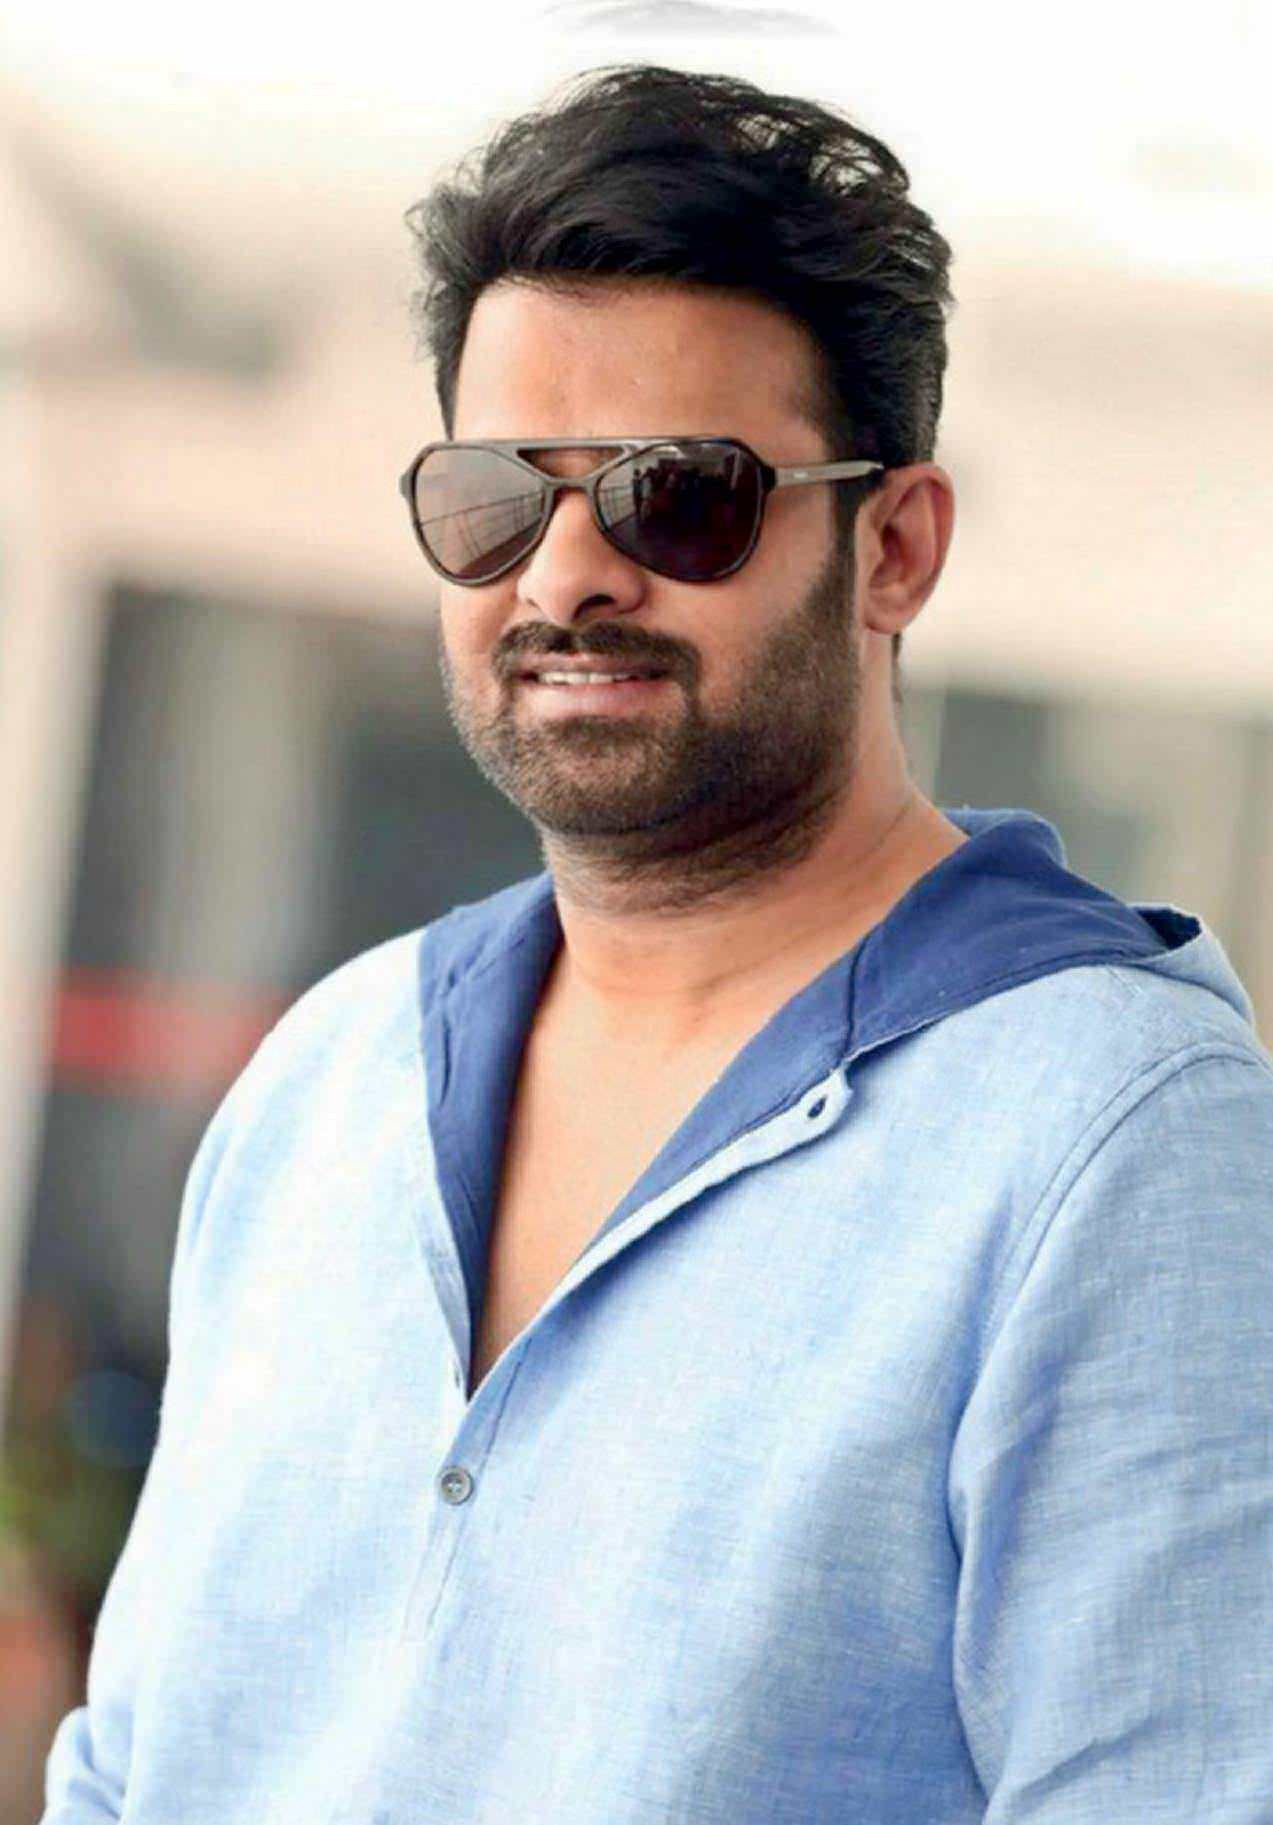 prabhas - men envy, girls adore!